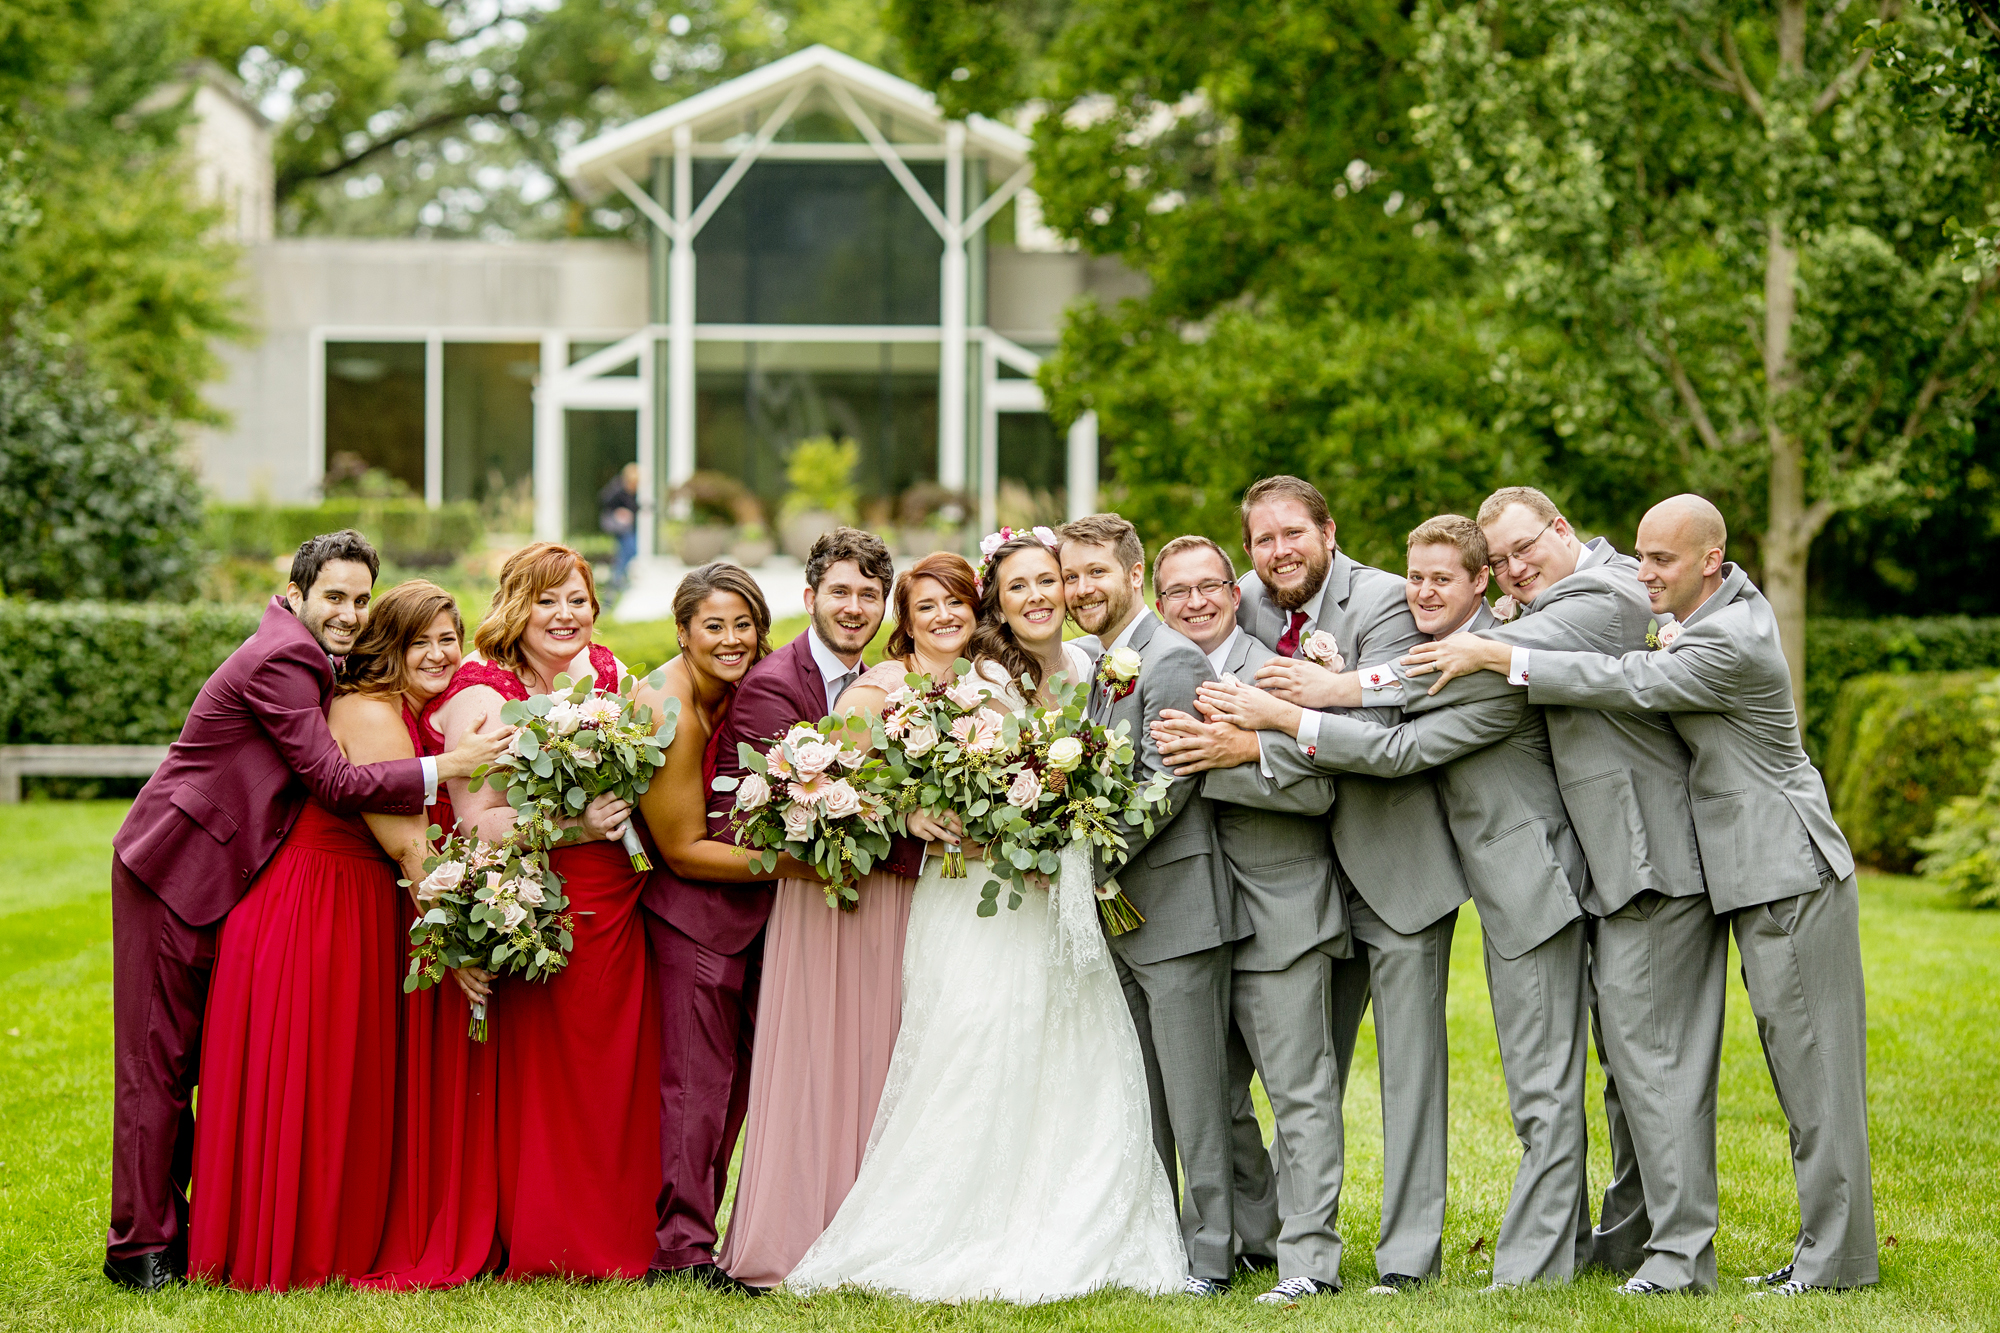 Seriously_Sabrina_Photography_Lisle_Illinois_Morton_Arboretum_Wedding_Day_Gowen46.jpg